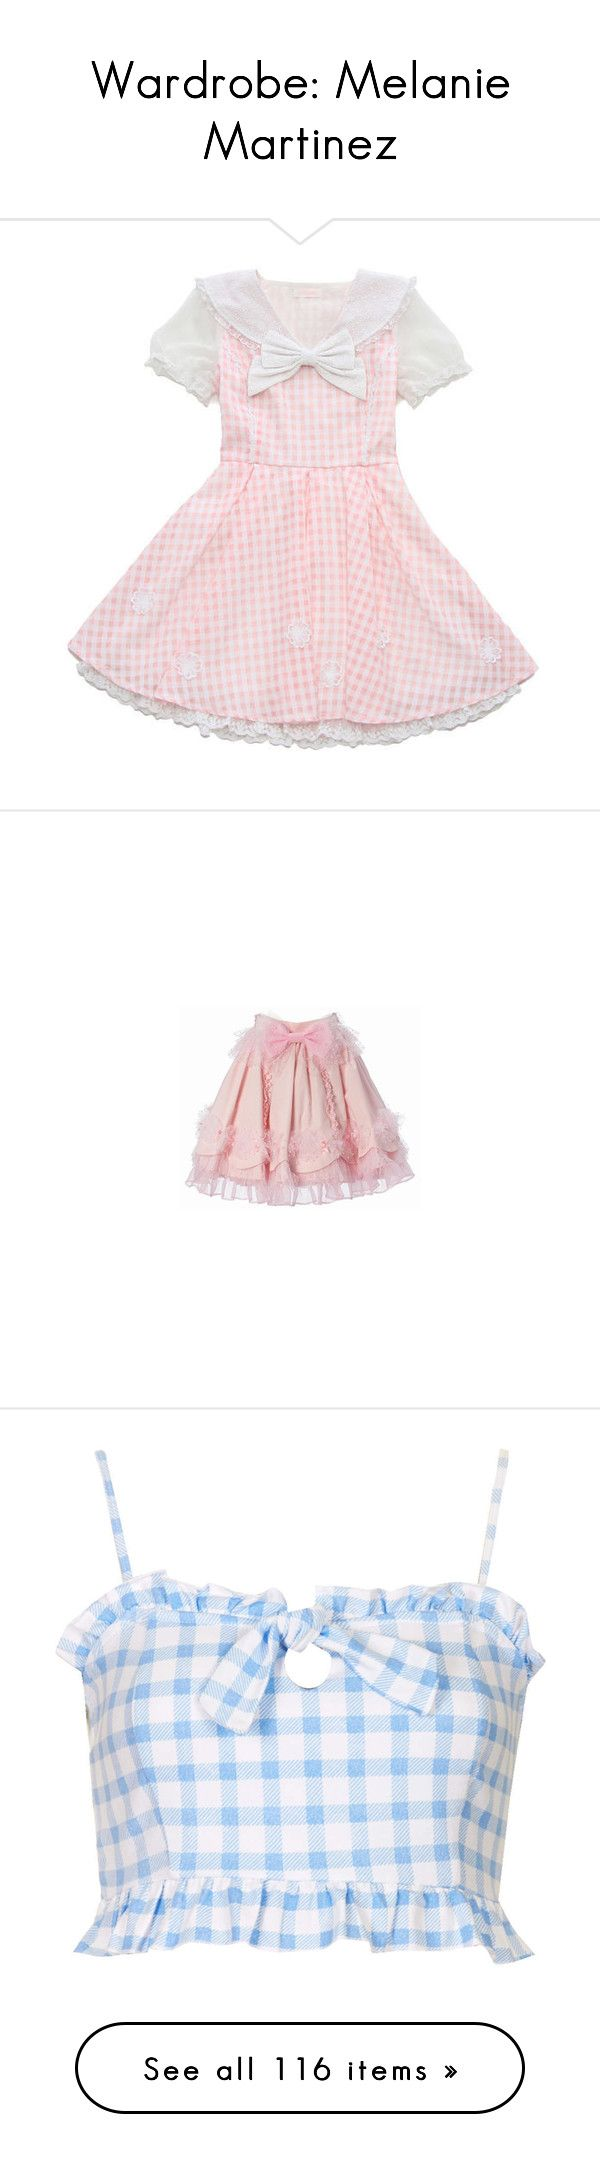 """Wardrobe: Melanie Martinez"" by annaclaraalvez ❤ liked on Polyvore featuring dresses, lolita, pink dress, skirts, bottoms, saias, pink skirt, tops, crop tops and shirts"